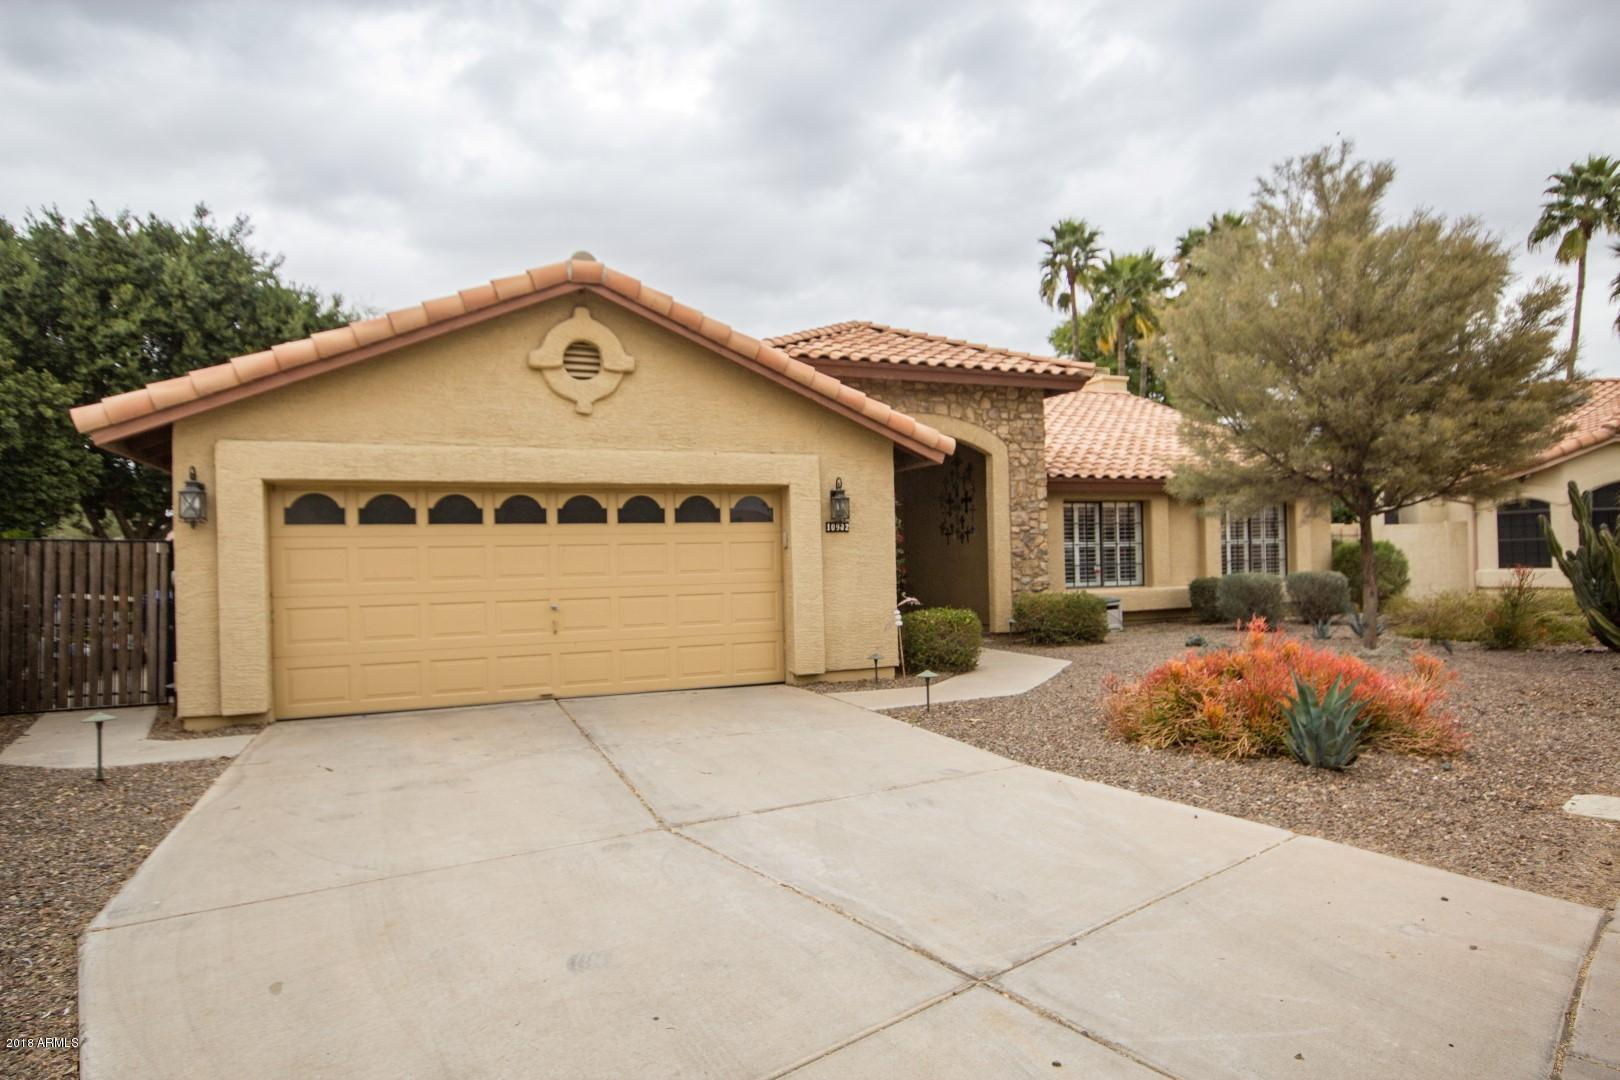 10902 W CITRUS GROVE Way, Avondale, AZ 85392 (MLS# 5723013) - The ...